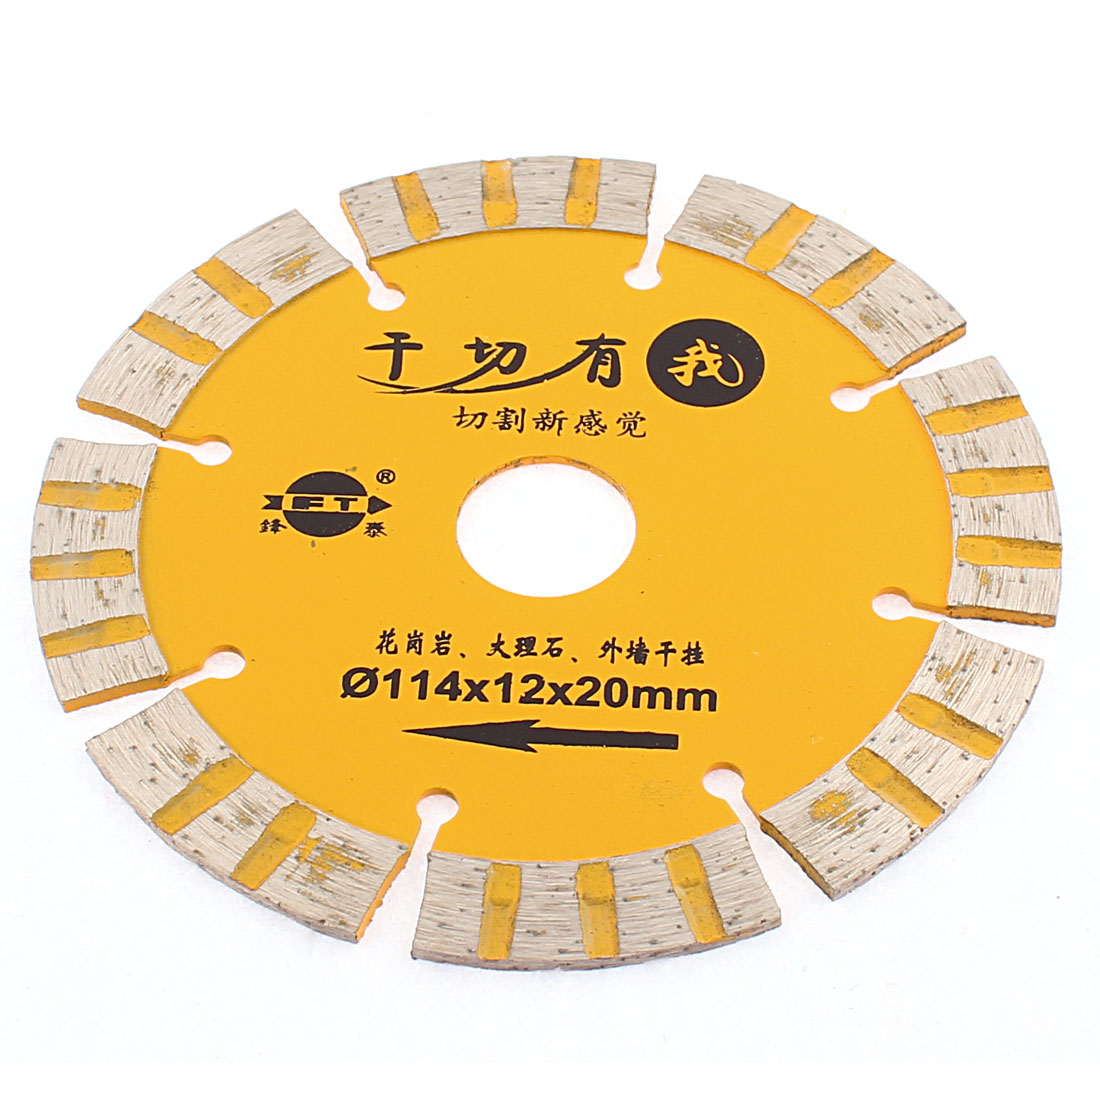 114mm x 20mm Circular Diamond Grinding Polishing Saw Cutter Disc Wheel